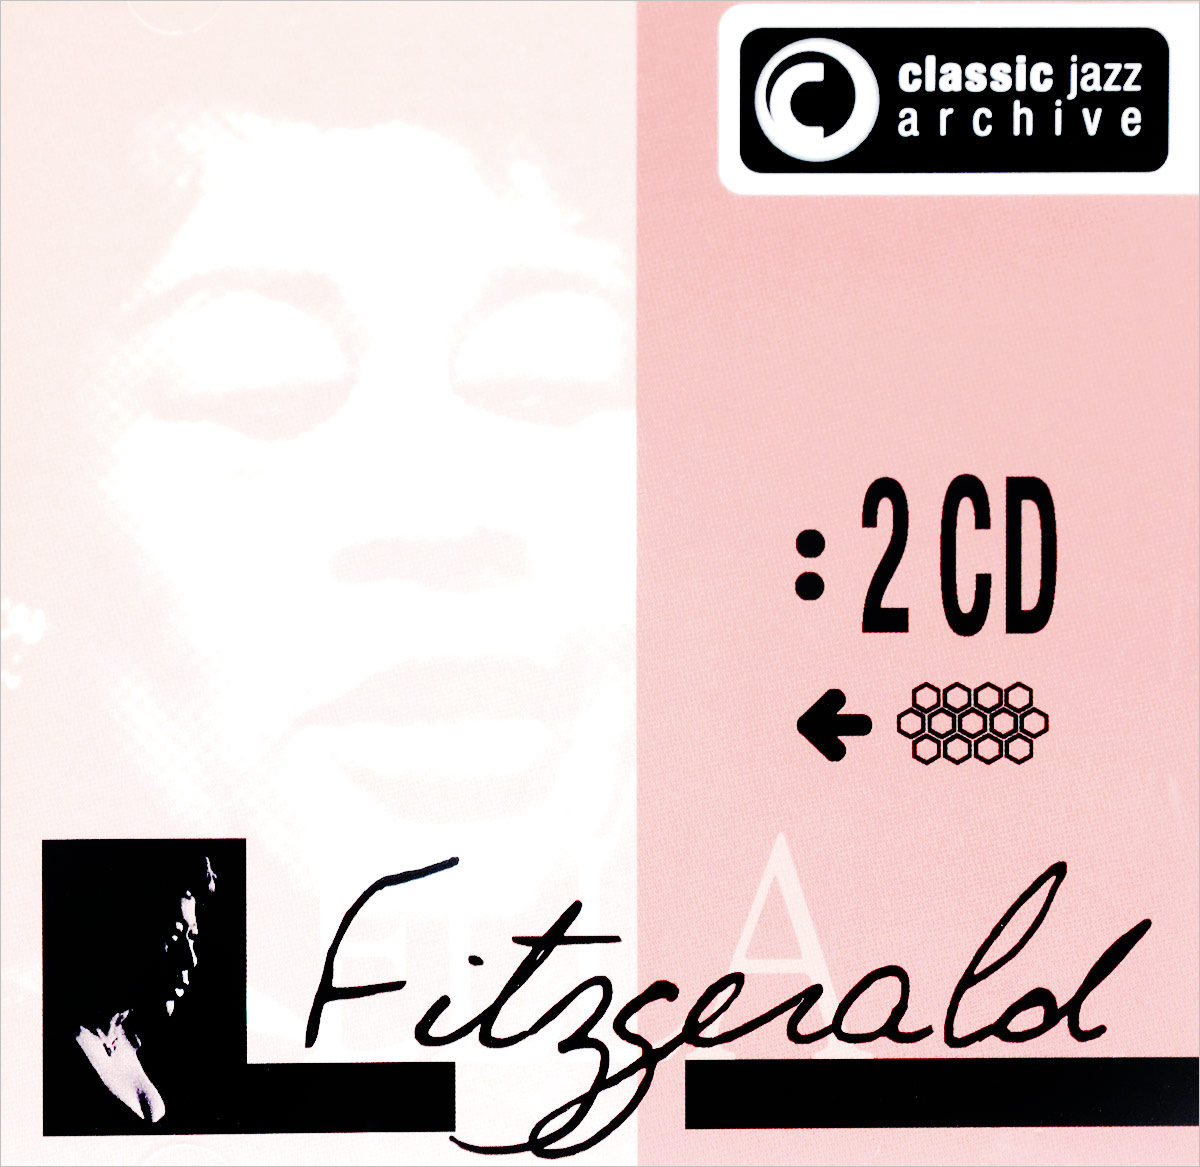 Элла Фитцжеральд Ella Fitzgerald. Classic Jazz Archive (2 CD) элла фитцжеральд the count basie orchestra tommy flanagan trio оскар питерсон ray brown duo jazz at the santa monica civic 72 3 cd